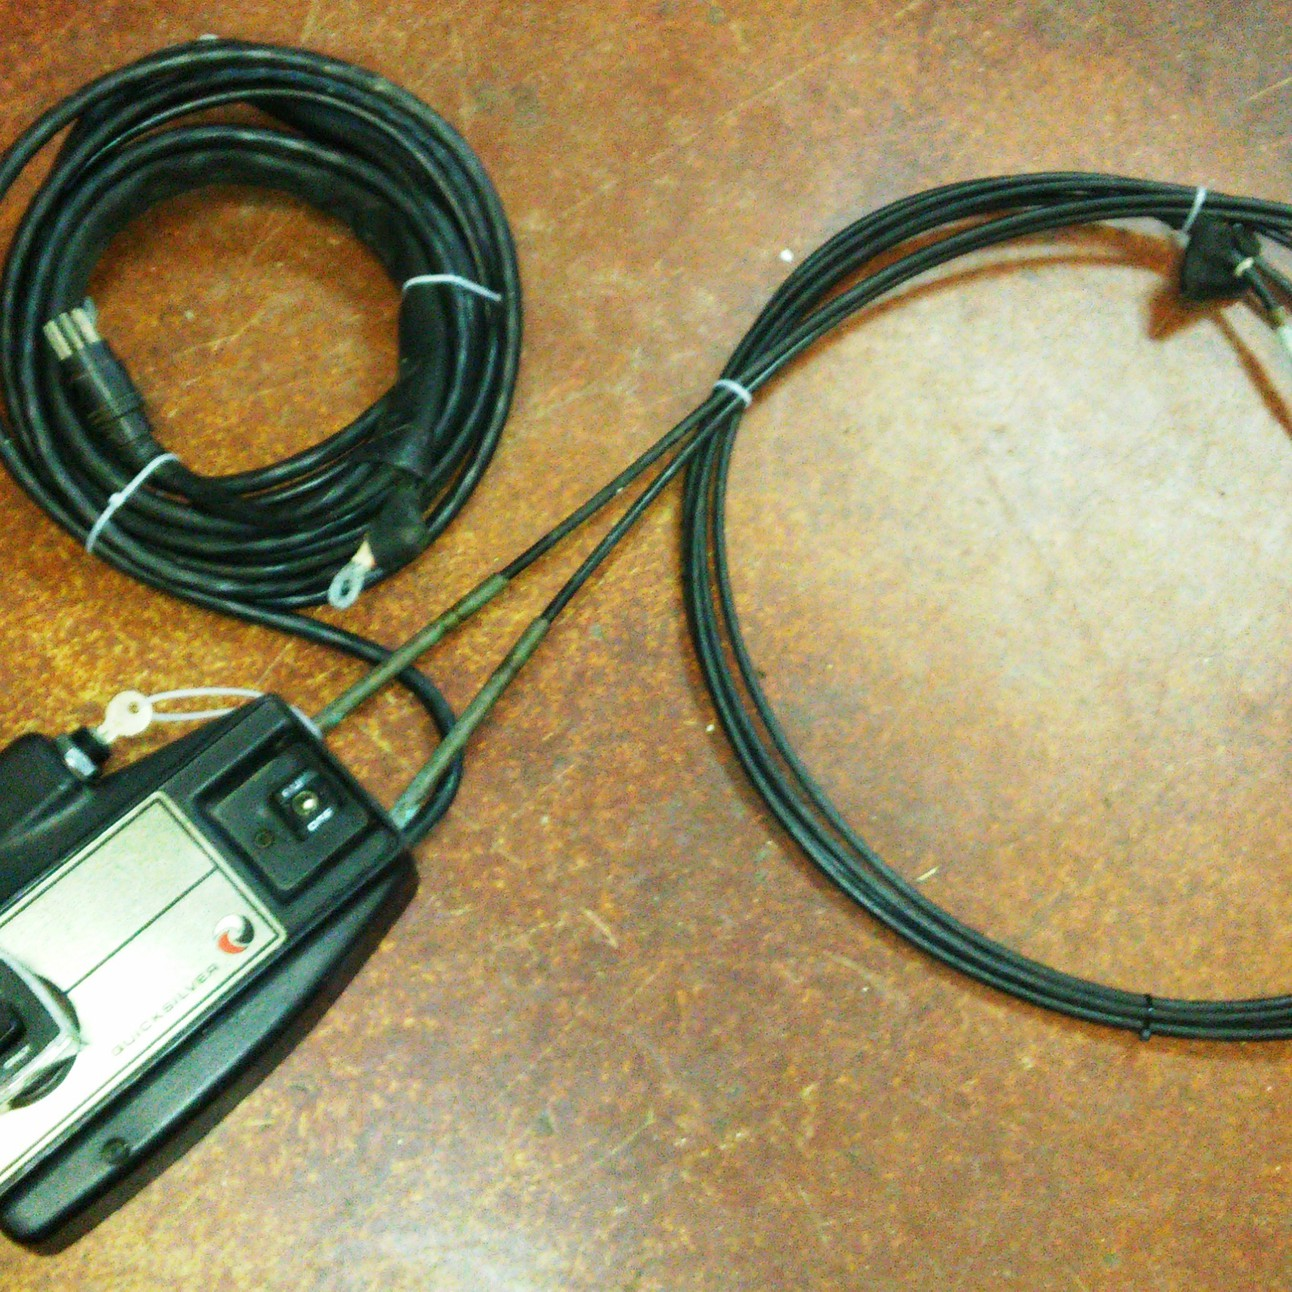 Sold Mercruiser Quicksilver Throttle Shift Control Box Assy W 12ft Wiring Harness Cable Set Key